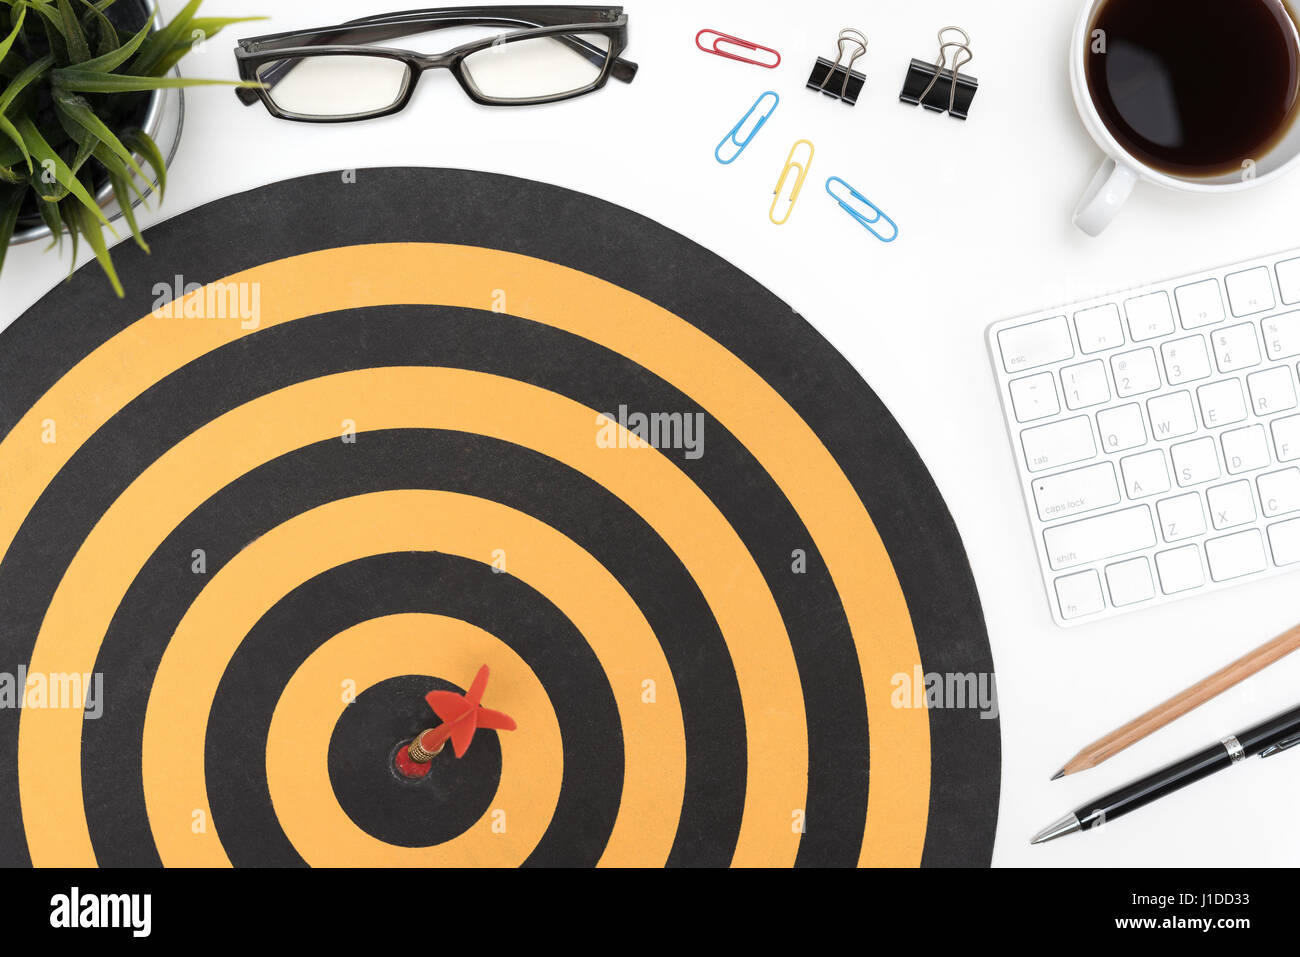 Dart Target Arrow Hitting On Bullseye In Dartboard Over Office Desk Table  Background With Eye Glasses, Pen, Pencil, Computer And Cup Of Coffee